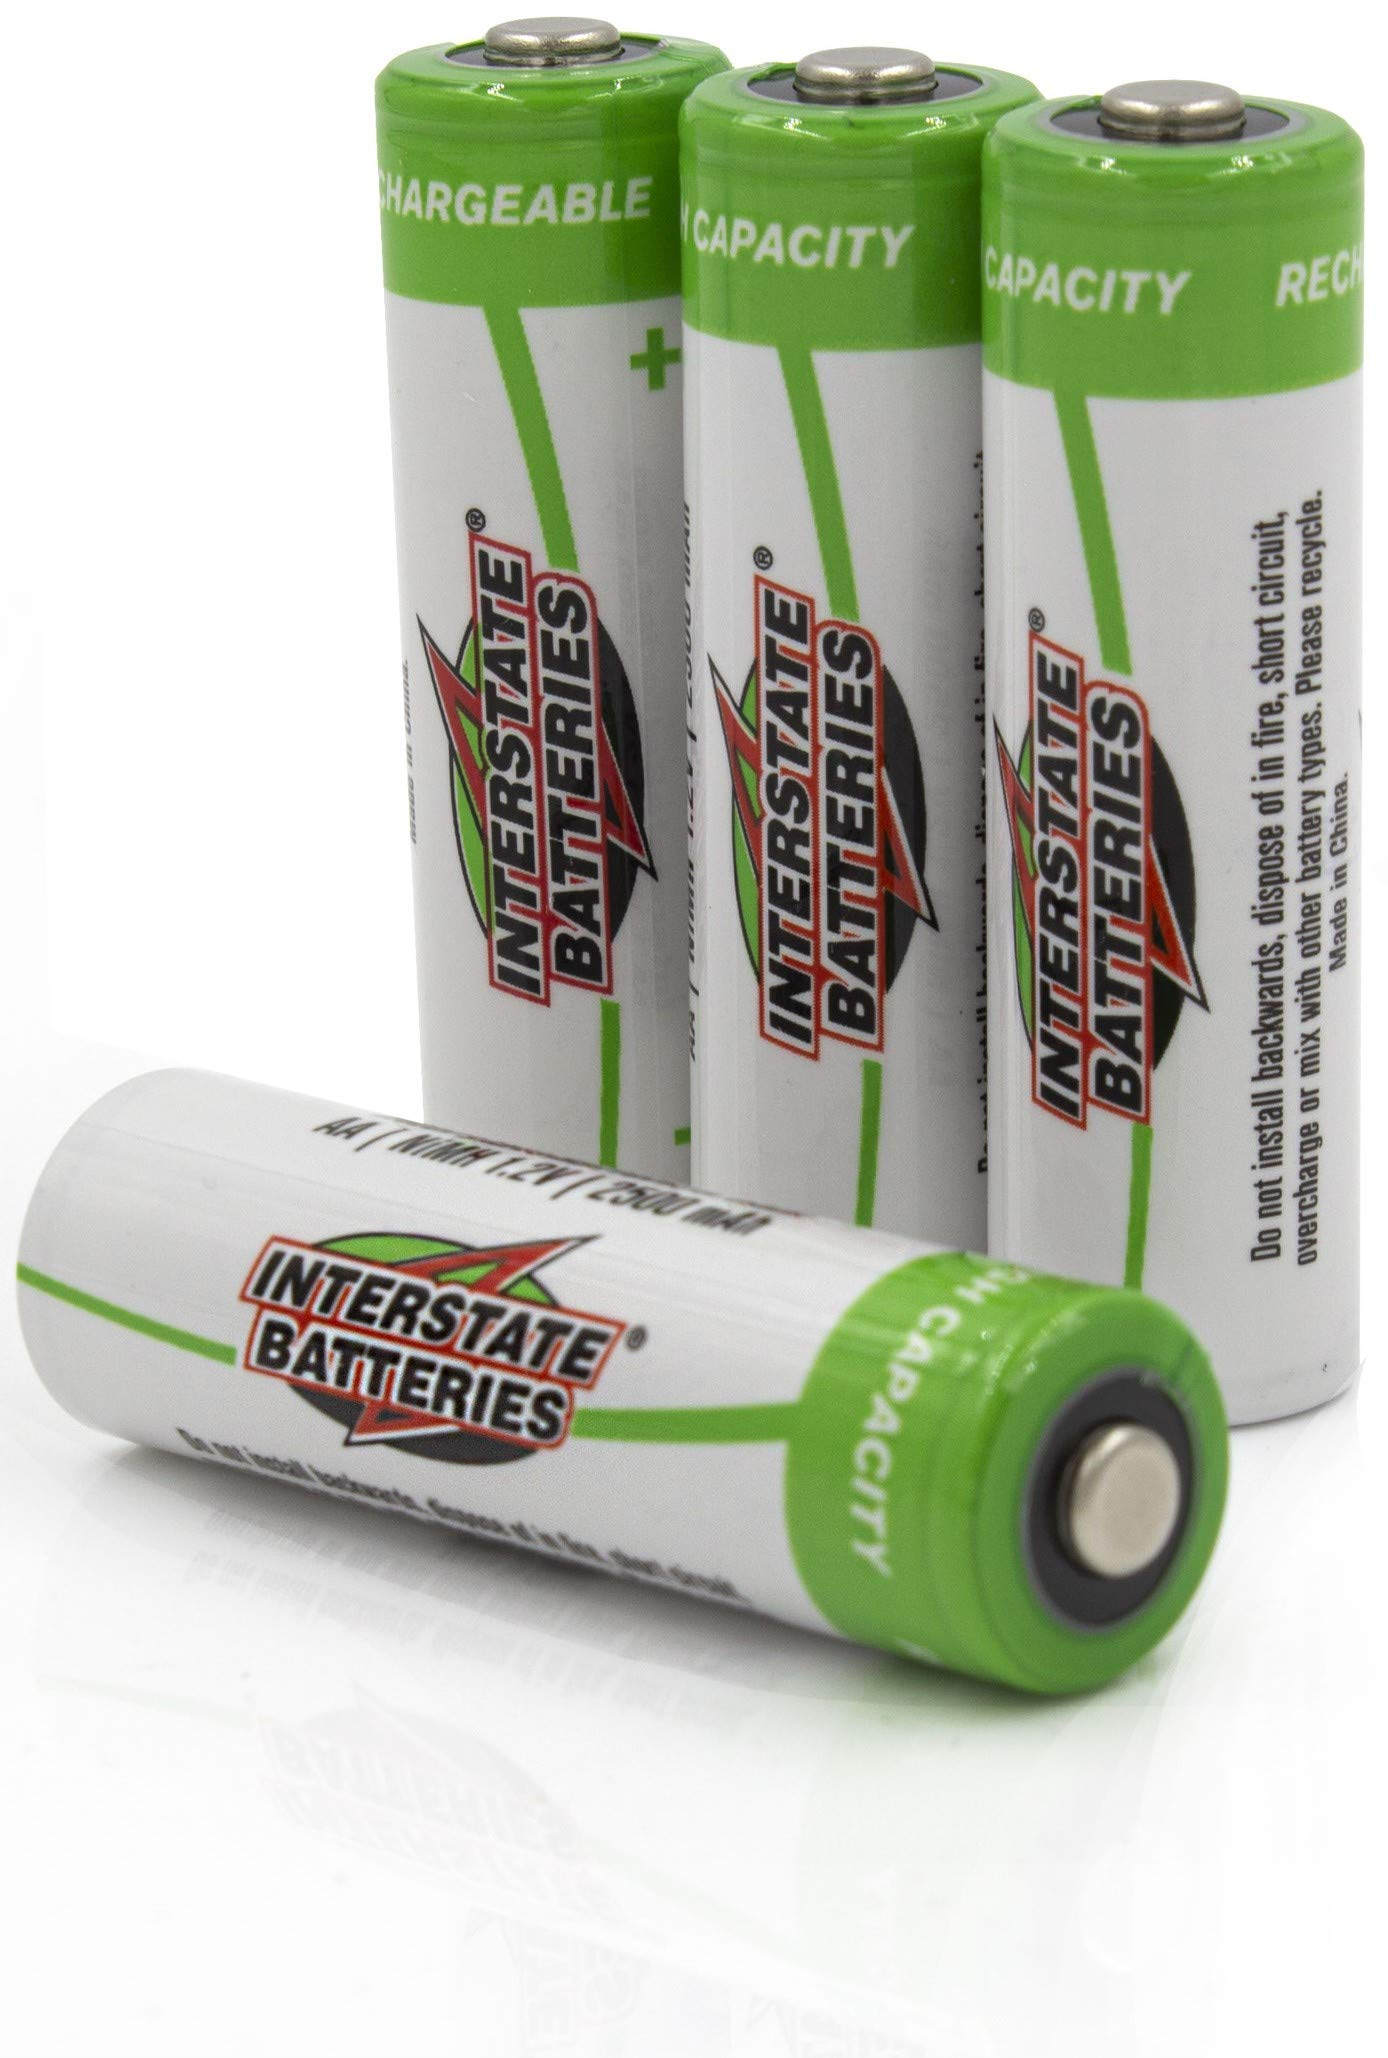 Interstate Batteries AA Rechargeable Batteries - High Capacity (2500 mAh NIMH AA Battery) 4 Pack - 1.2V (NIC1460)